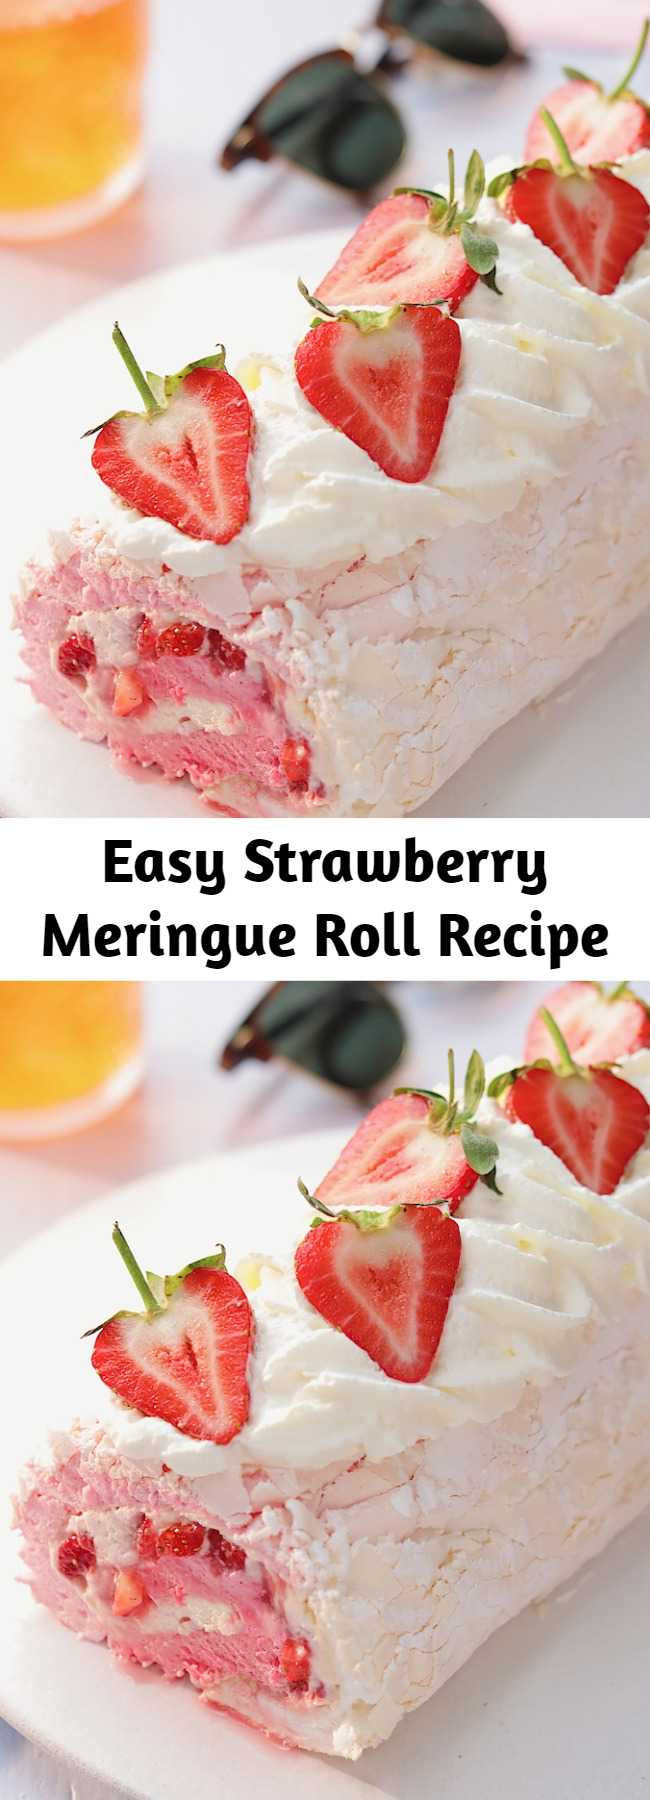 Easy Strawberry Meringue Roll Recipe - We've combined a pavlova and a swiss roll to make your ultimate fruity dessert! This strawberry meringue roll is a sure crowd pleaser!